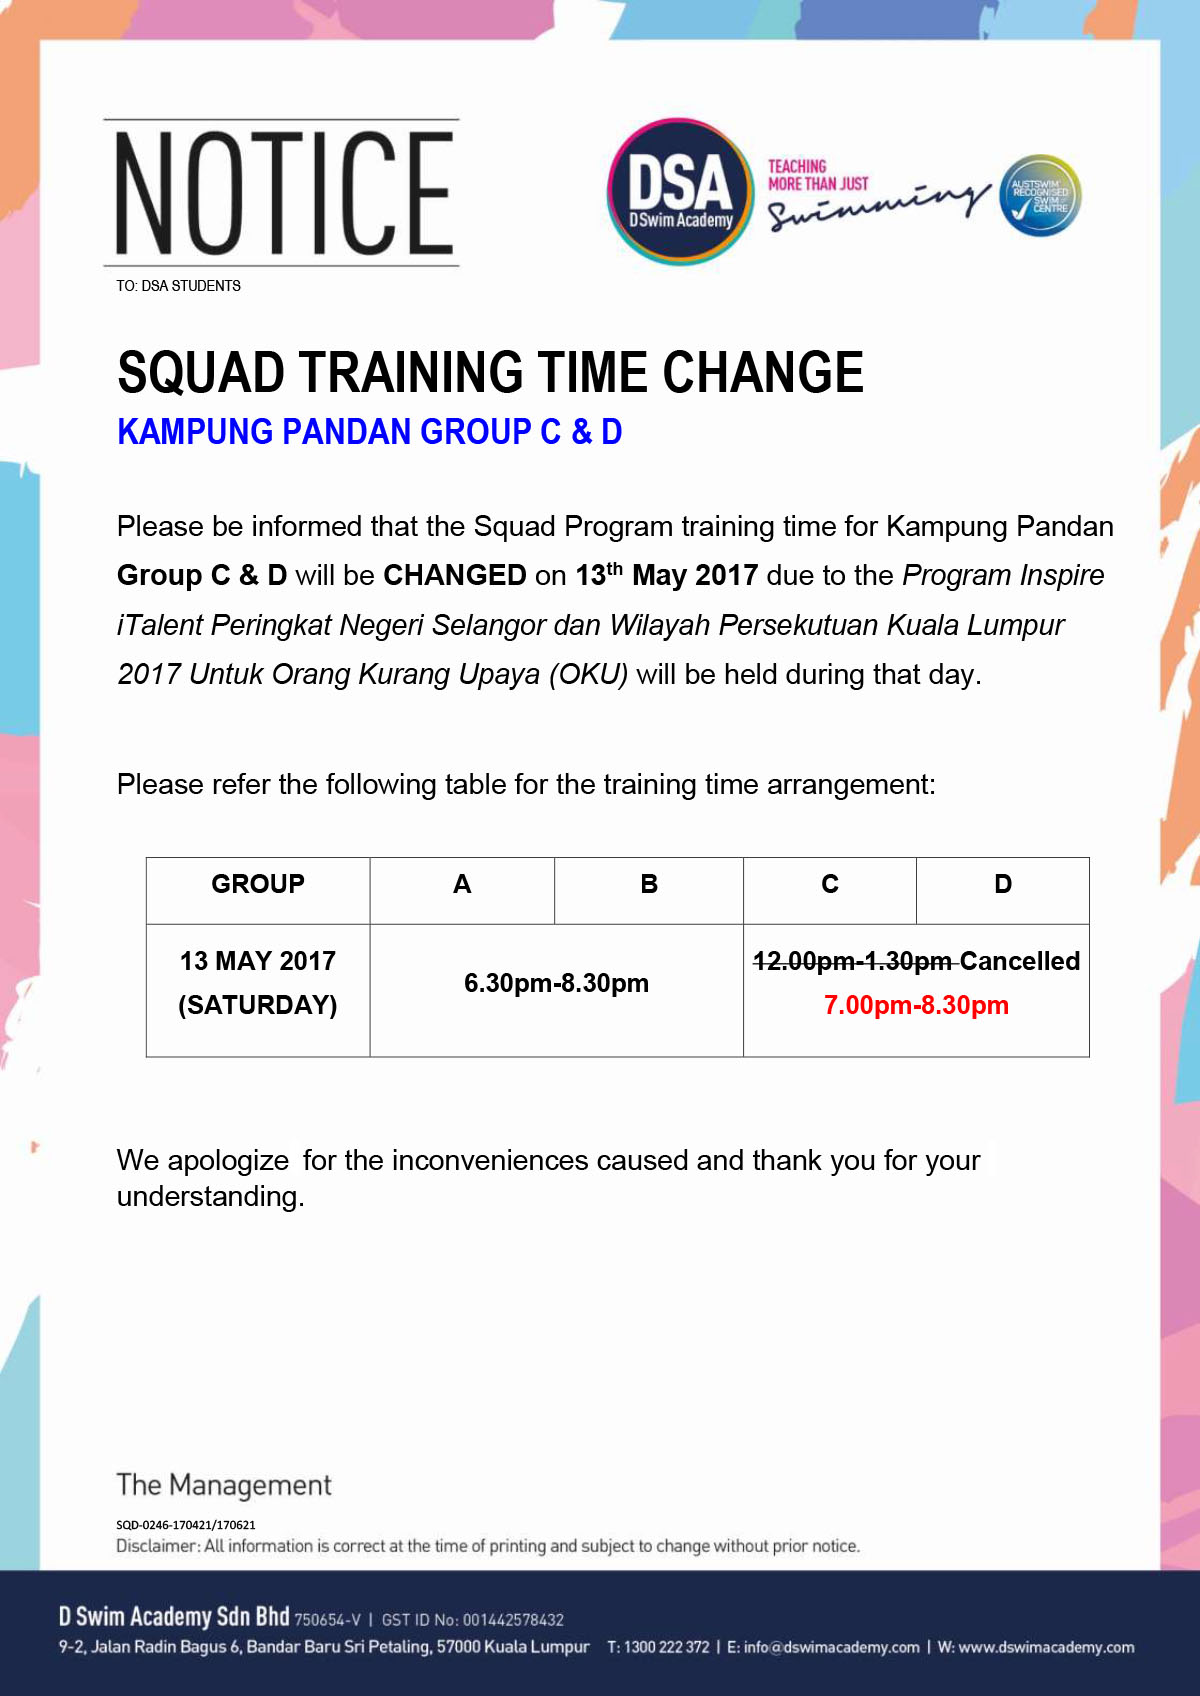 KP squad training time 13 May 2017